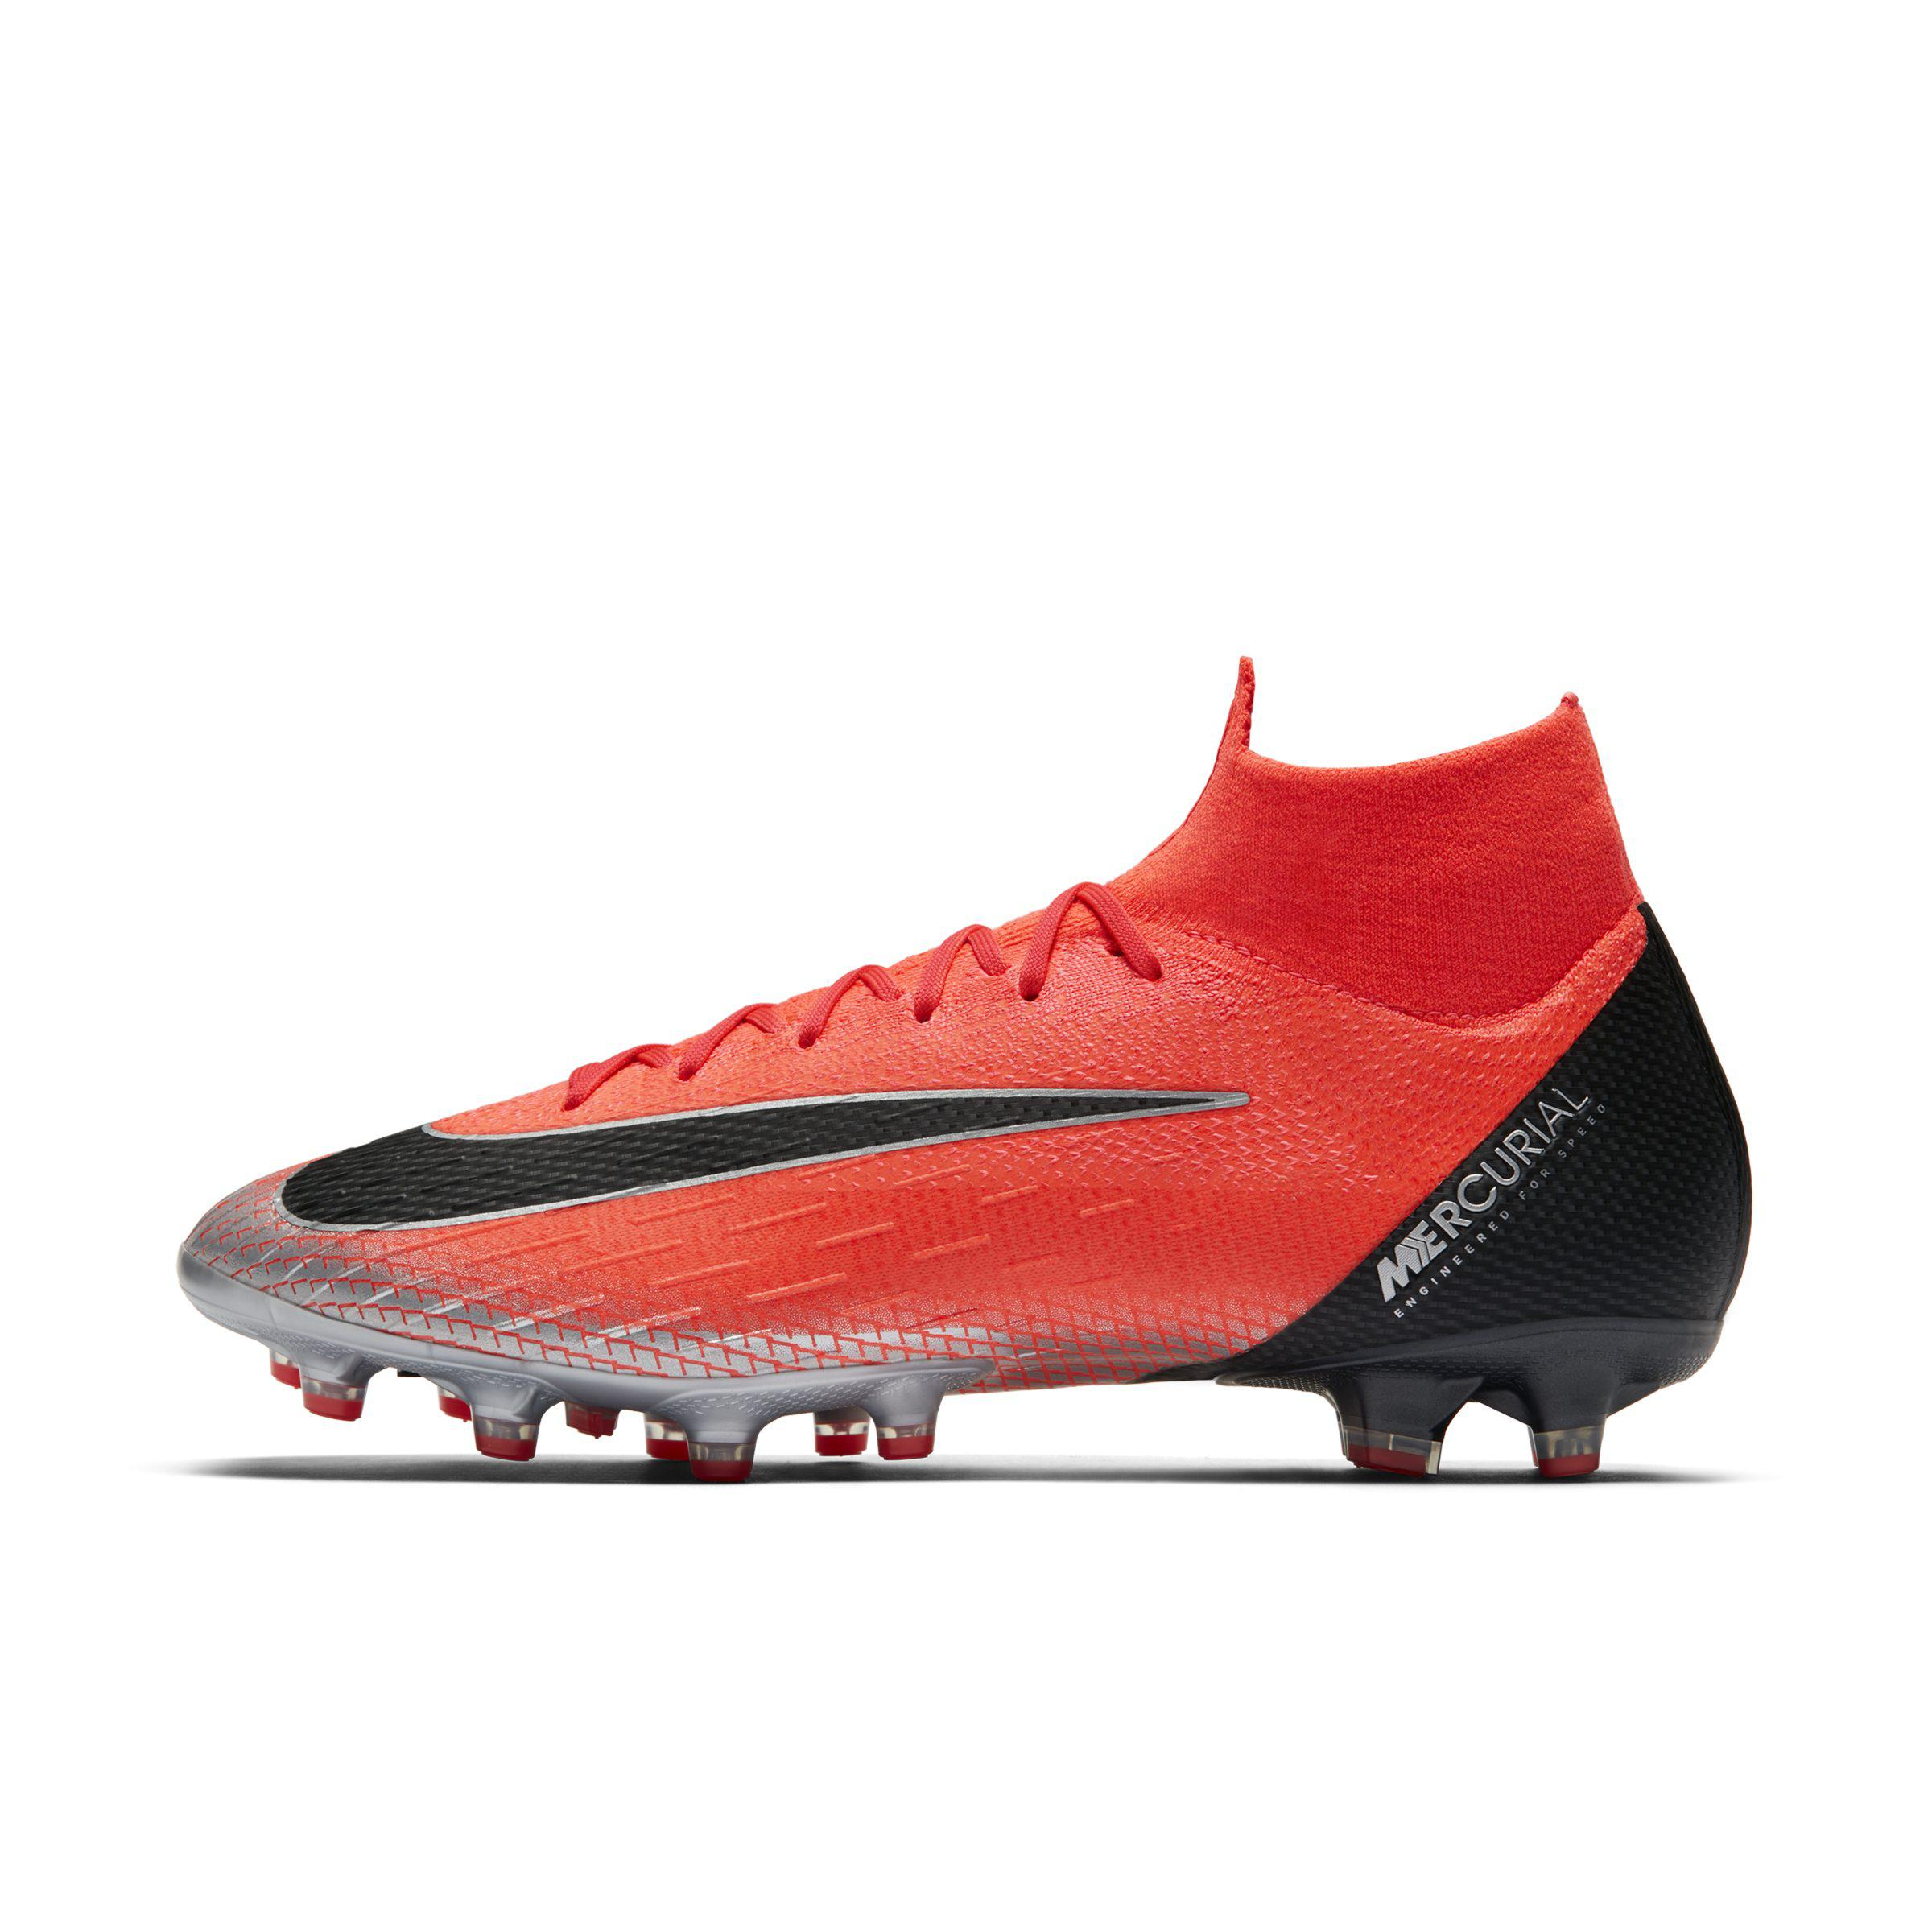 f60641c75 Nike Cr7 Superflyx 6 Elite Artificial-grass Pro Football Boot in Red ...